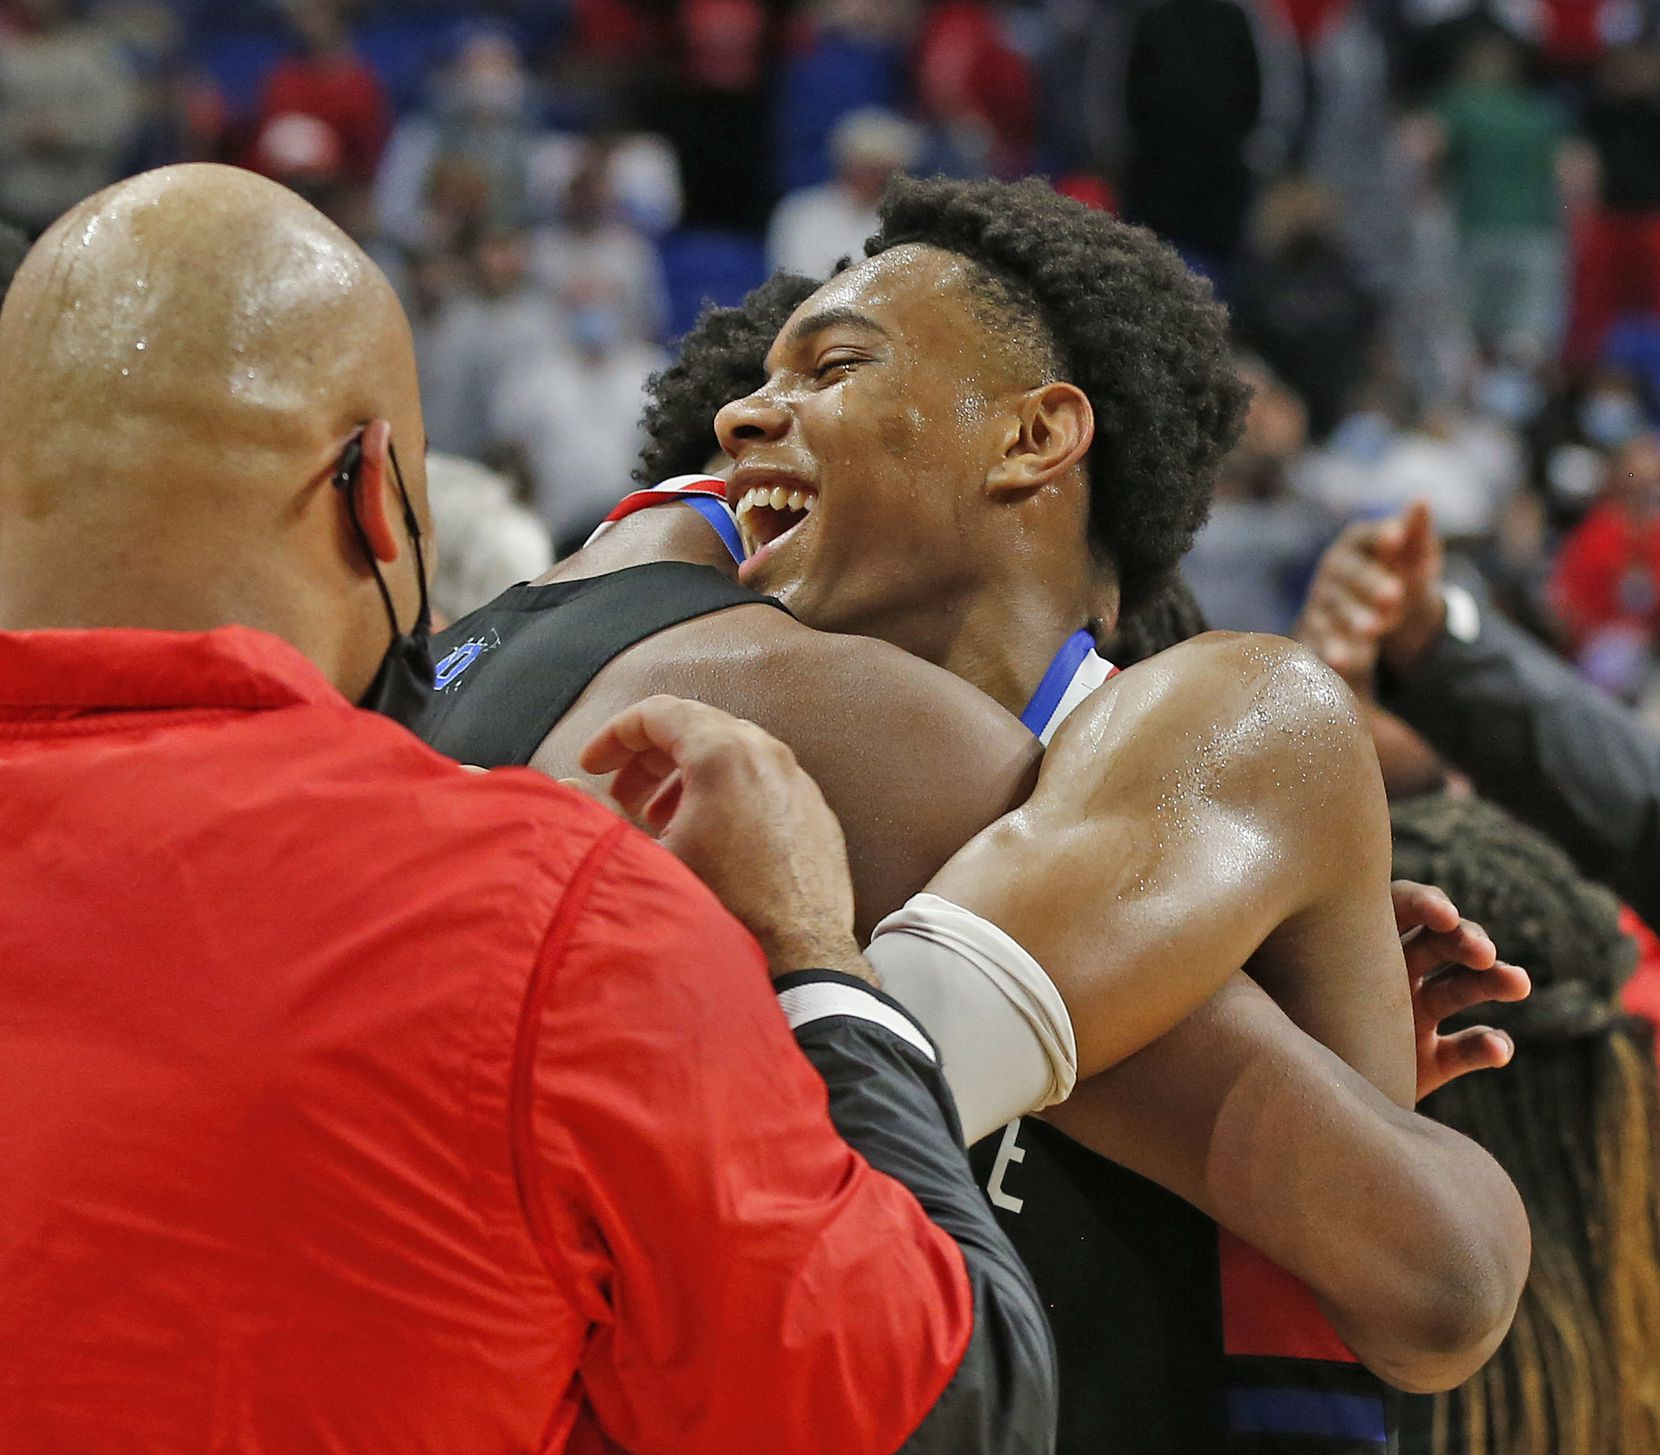 Duncanville Zhuric Phelps #0 is hugged by teammates. UIL boys Class 6A basketball state championship game between Duncanville and Austin Westlake on Saturday, March 13, 2021 at the Alamodome.